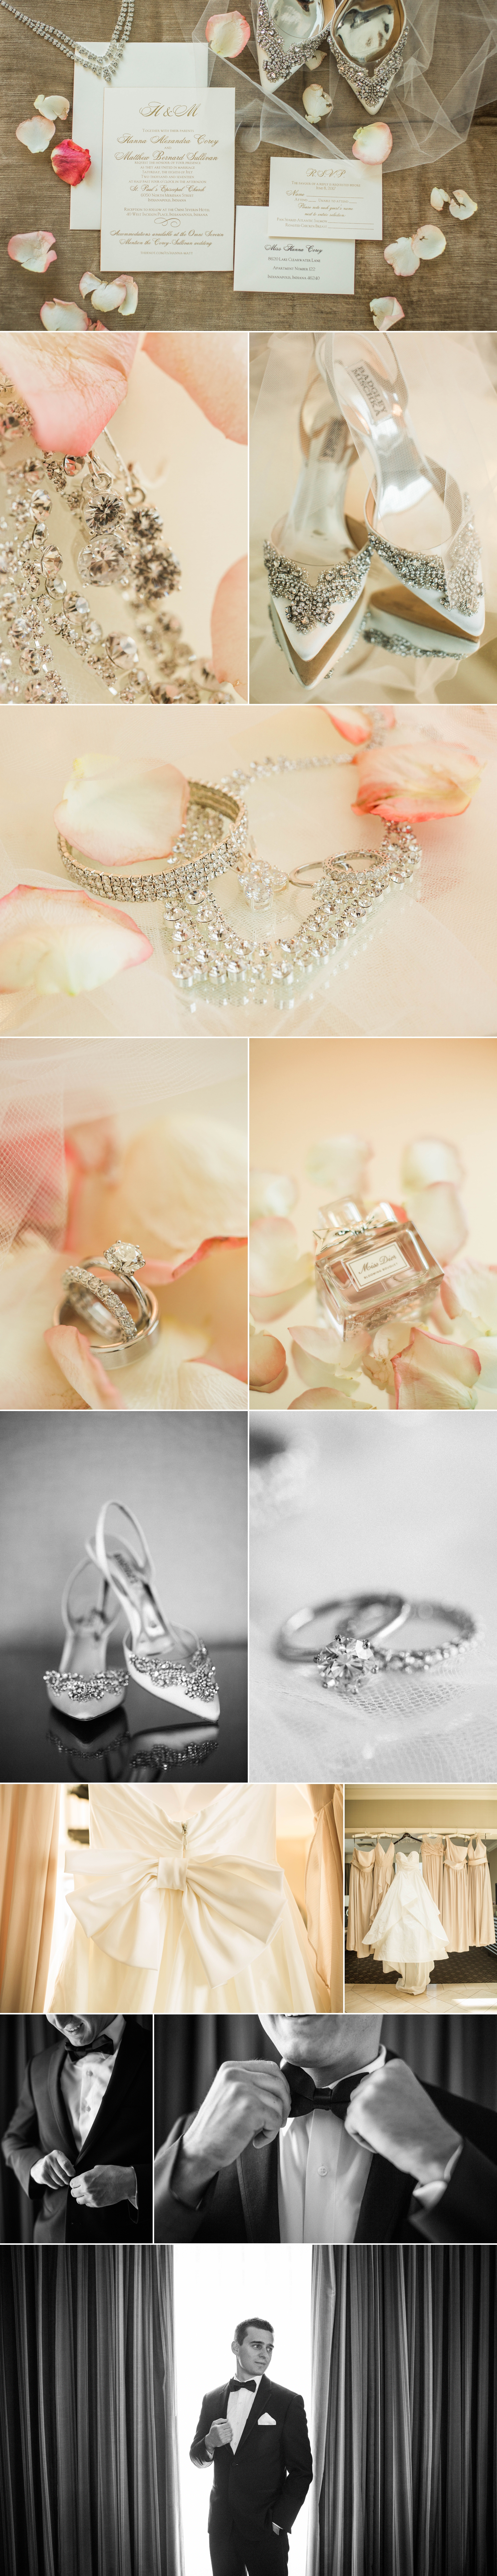 wedding-wedding day-bride-getting ready-details-bridal details-indianapolis-the omni-groom-wedding ring